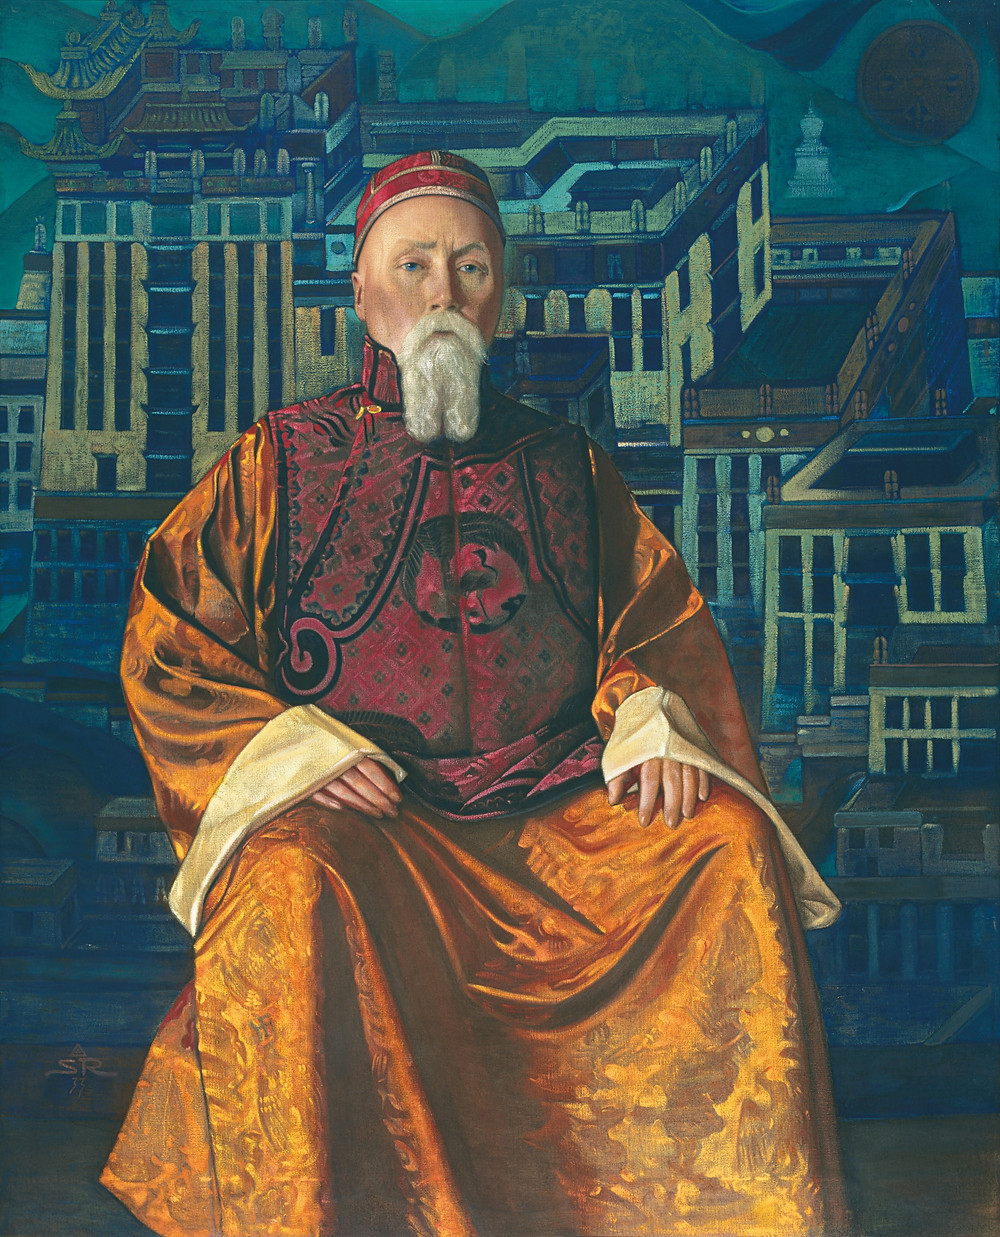 Portrait of the artists Nicholas Roerich in a Tibetan Robe, painted by his son, Svetoslav Roerich in 1933.